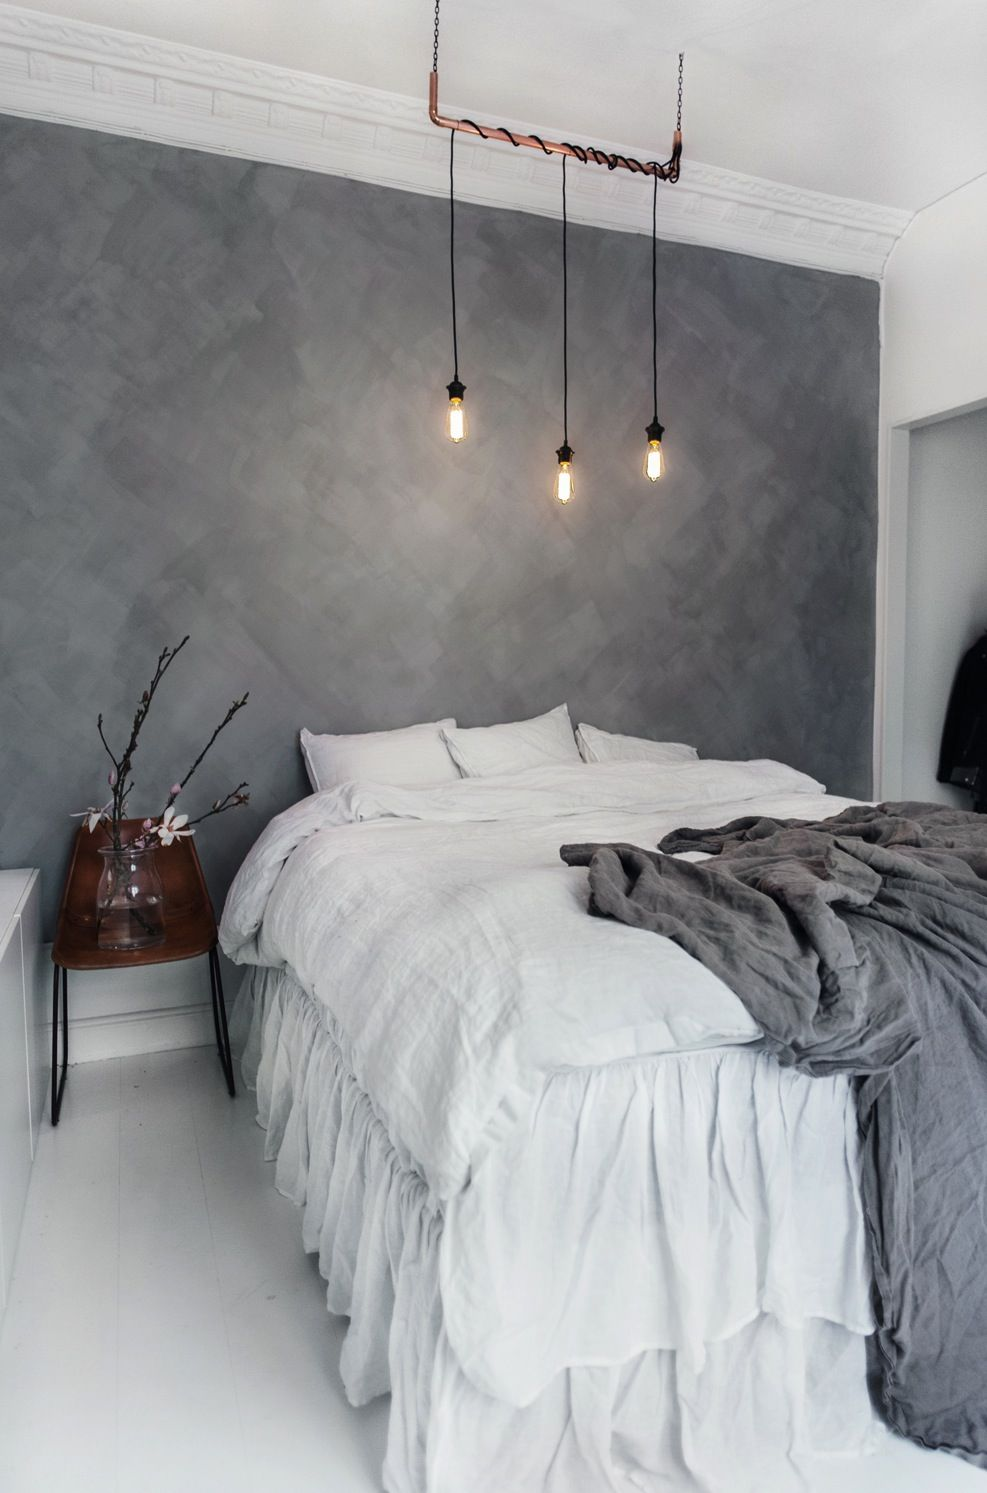 Master bedroom ideas grey  Wandfarbe  Schlafzimmer  Pinterest  Lisa Wall papers and Smiley